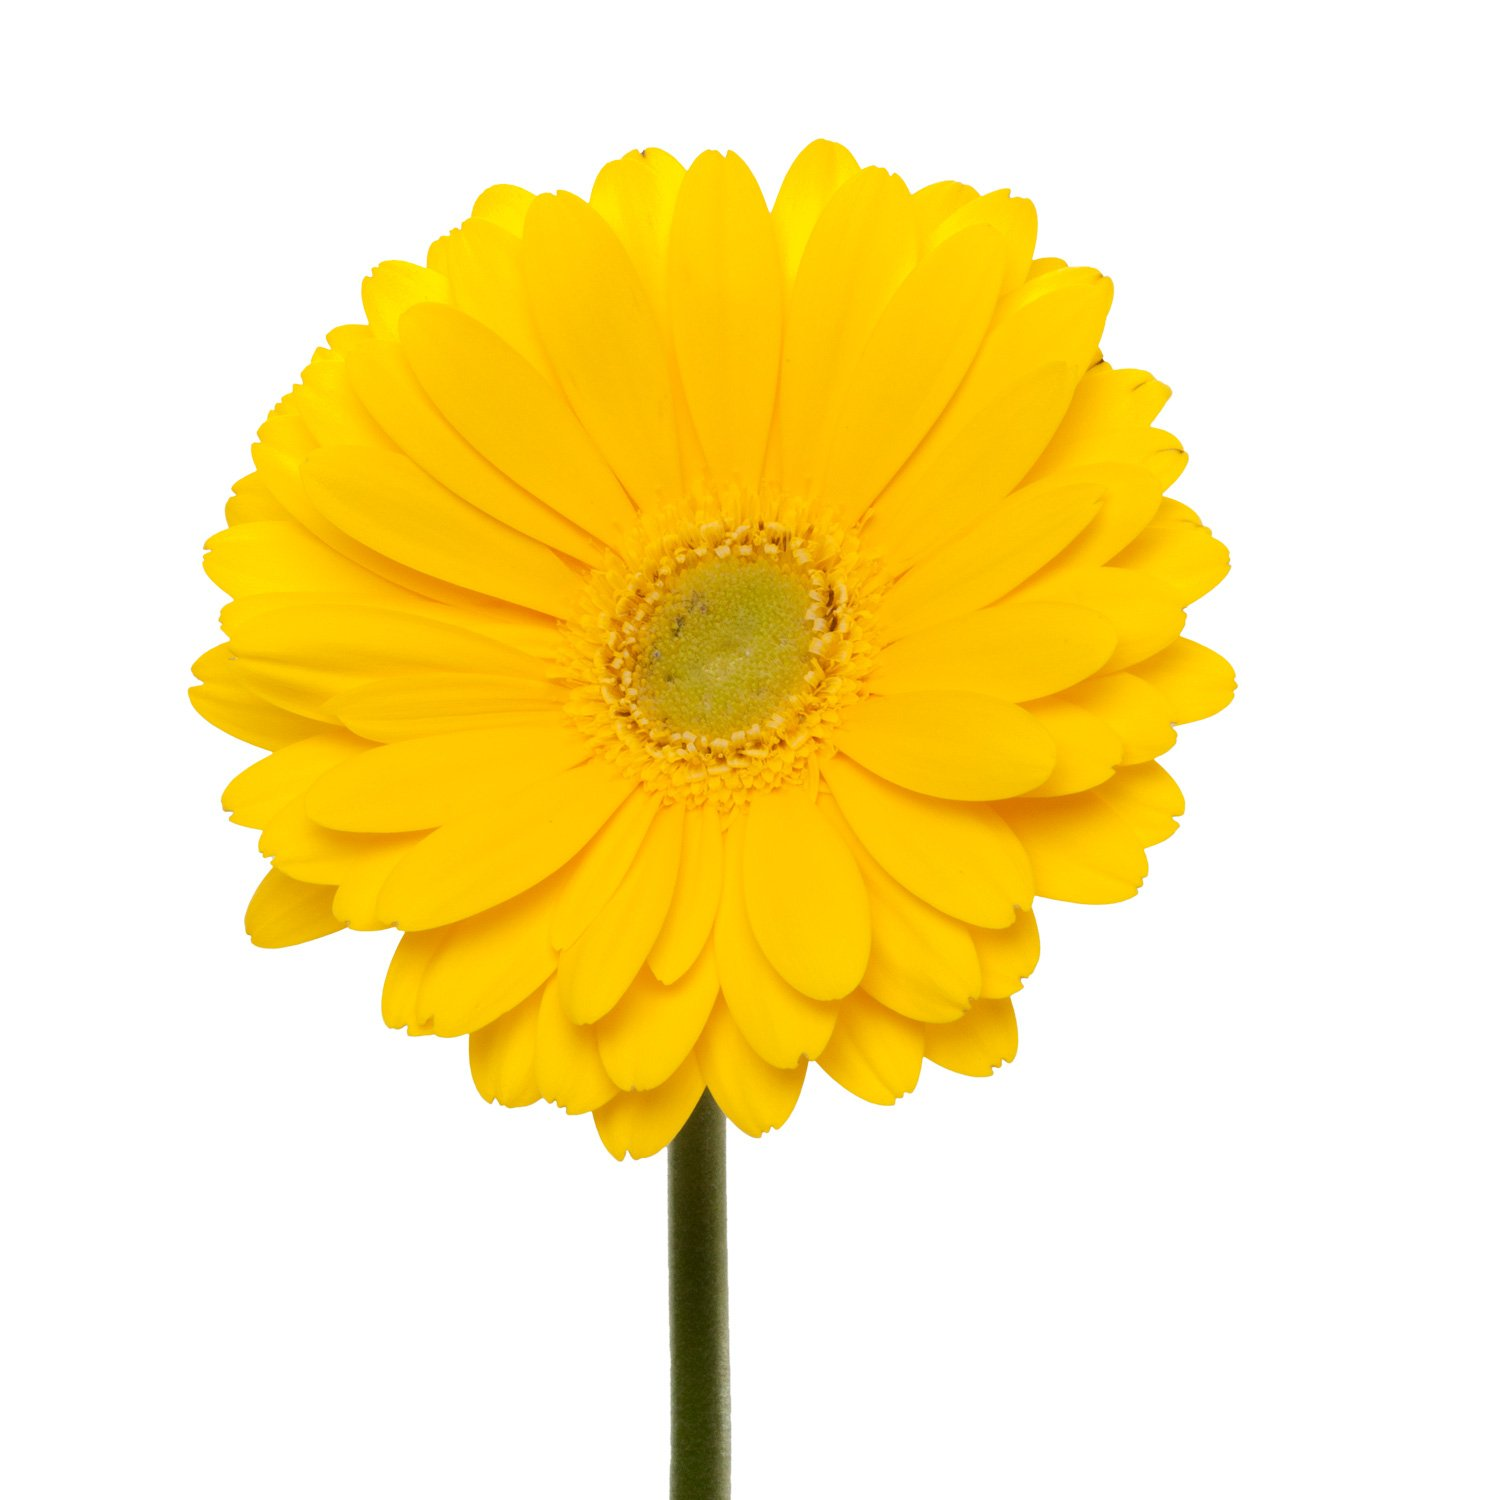 Gerbera Light Center | Yellow - 80 Stem Count by Flower Farm Shop